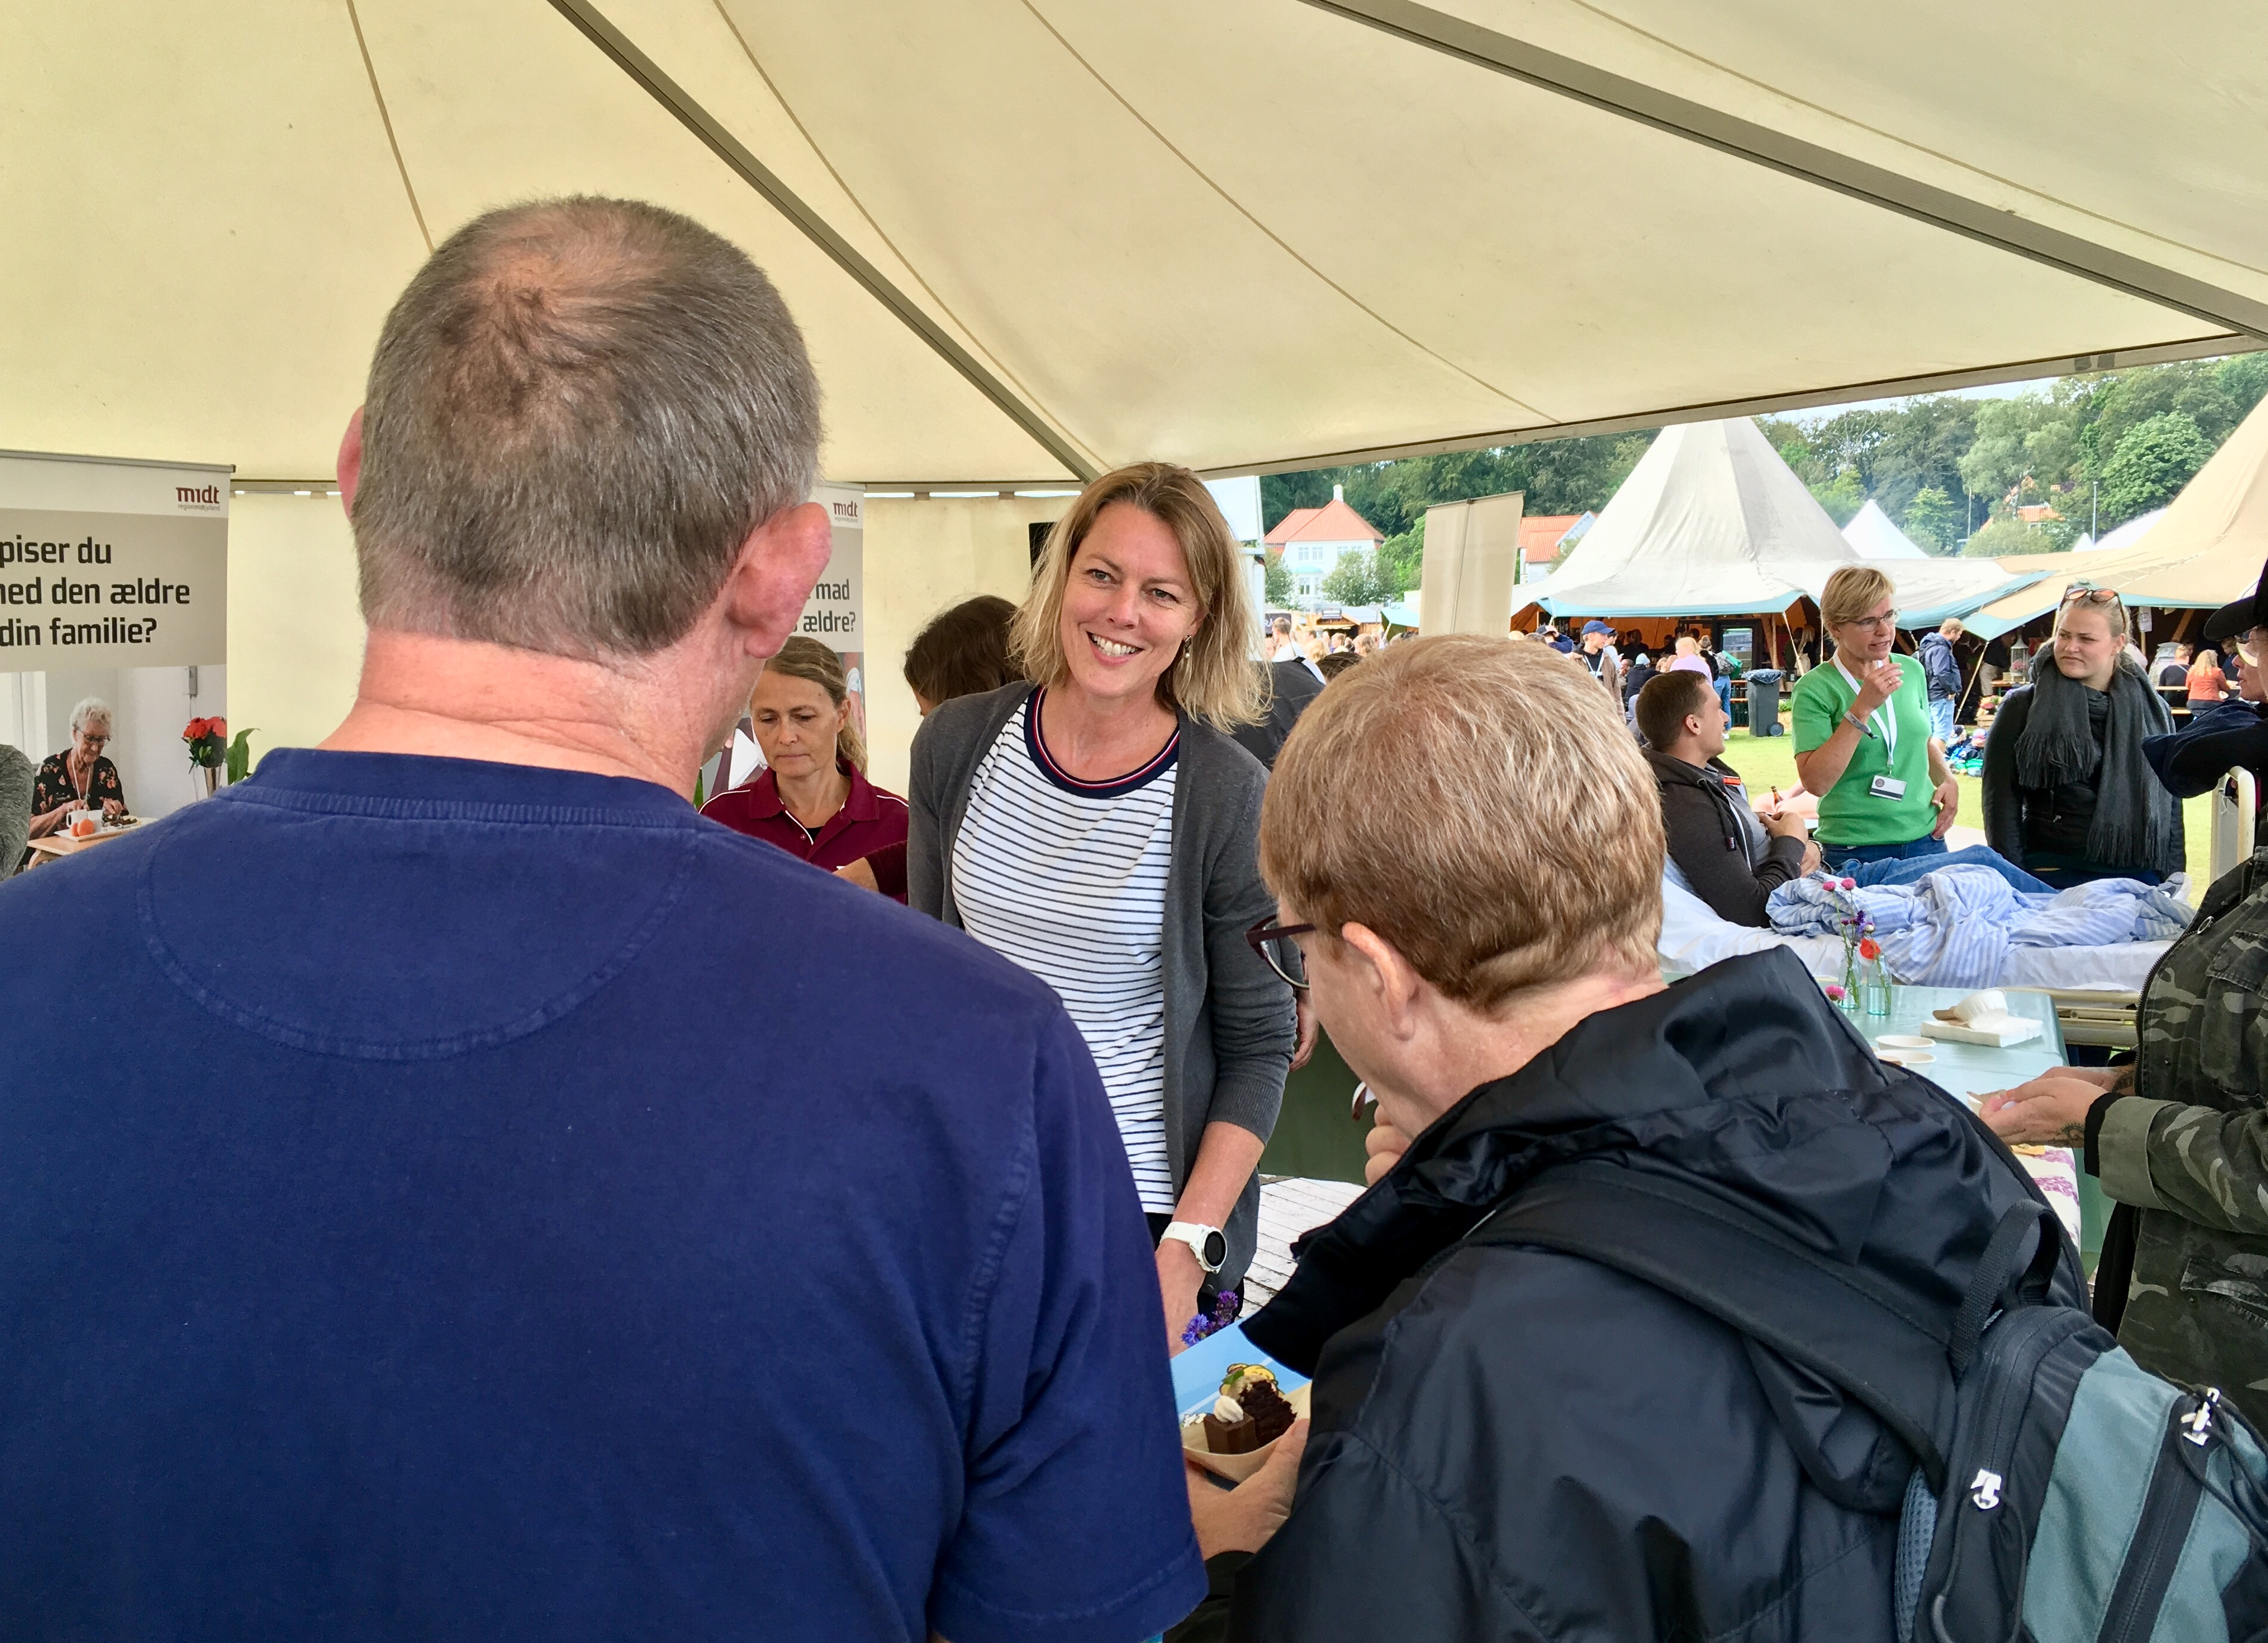 """Photo from a """"sustainability and healt tent"""" at Food Festival 2019 in Aarhus, DK."""